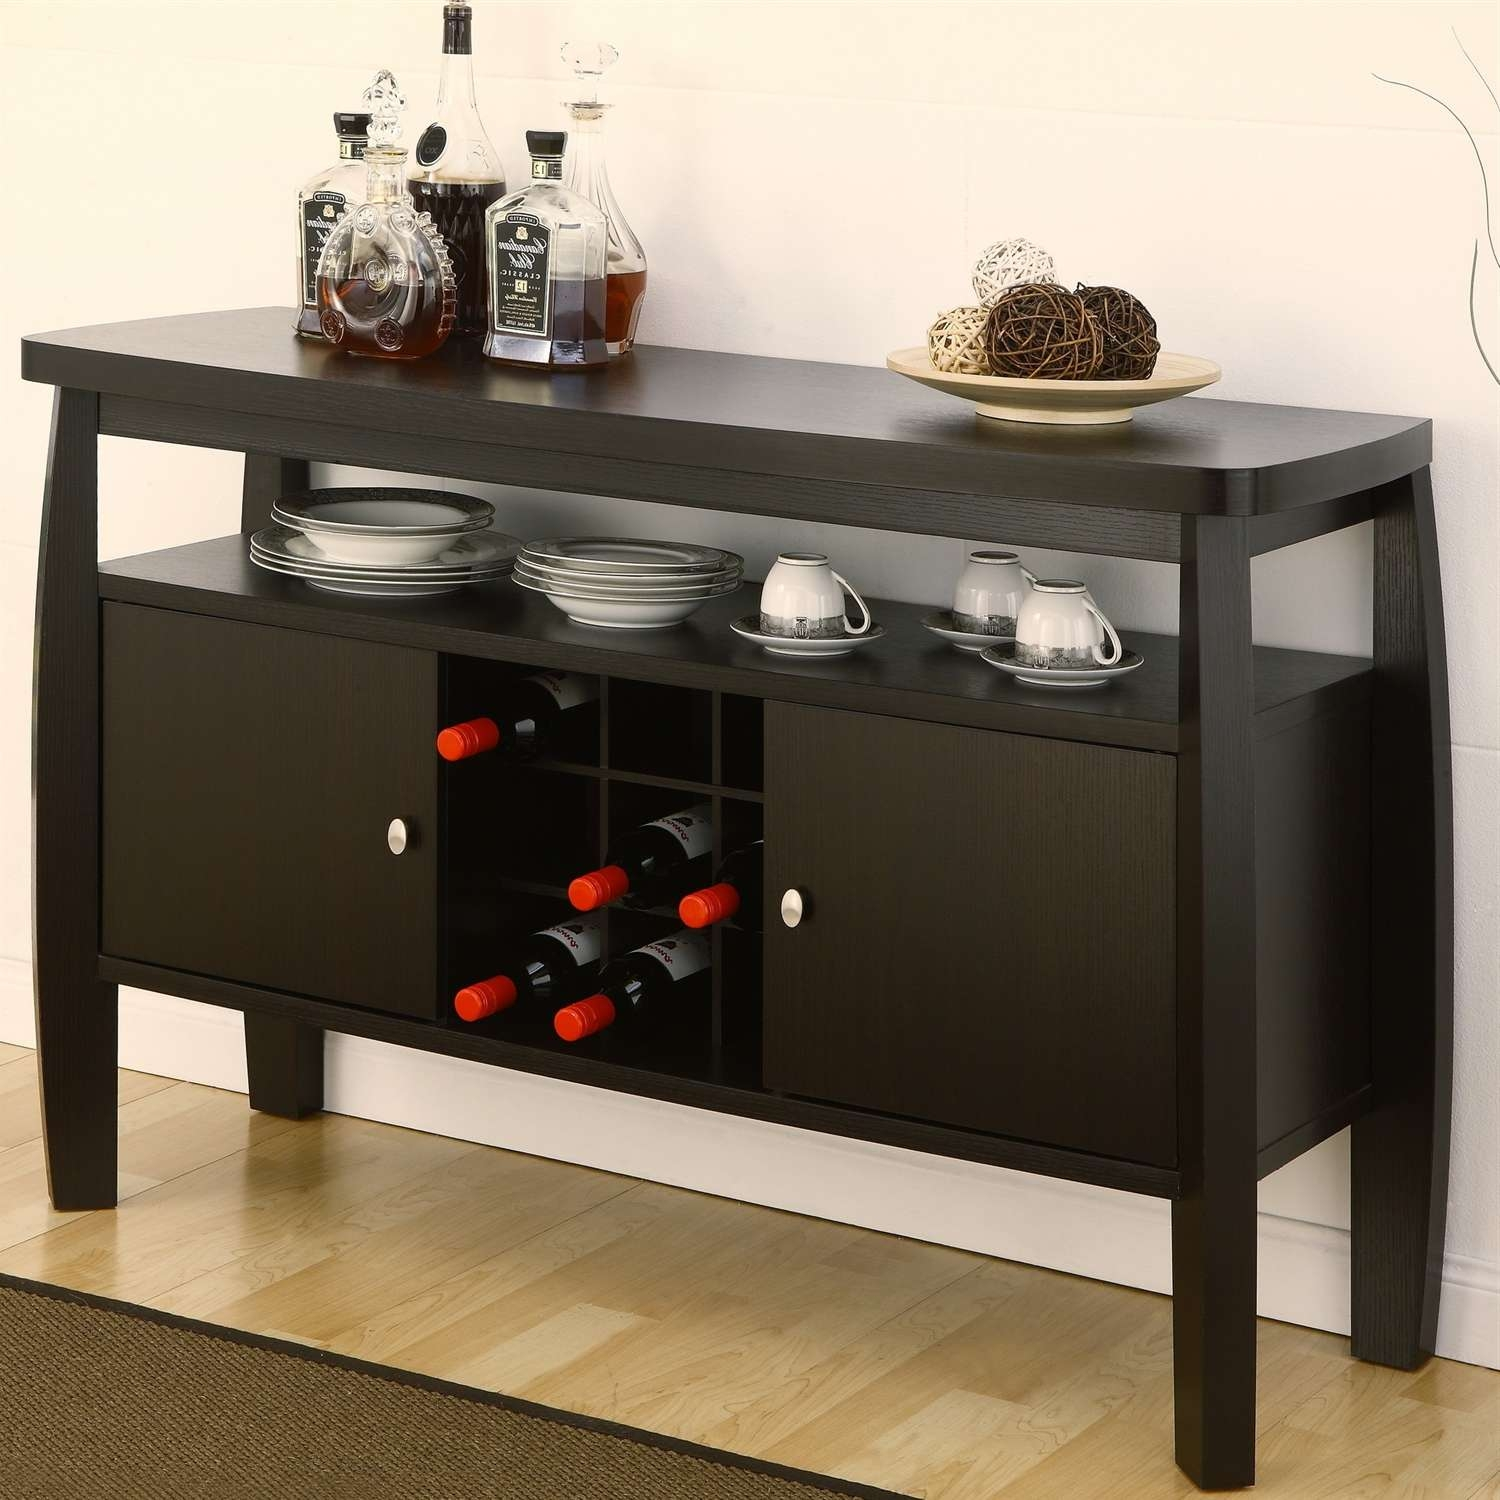 Best Of Buffet Sideboard Server – Bjdgjy With Buffet Servers And Sideboards (View 2 of 20)